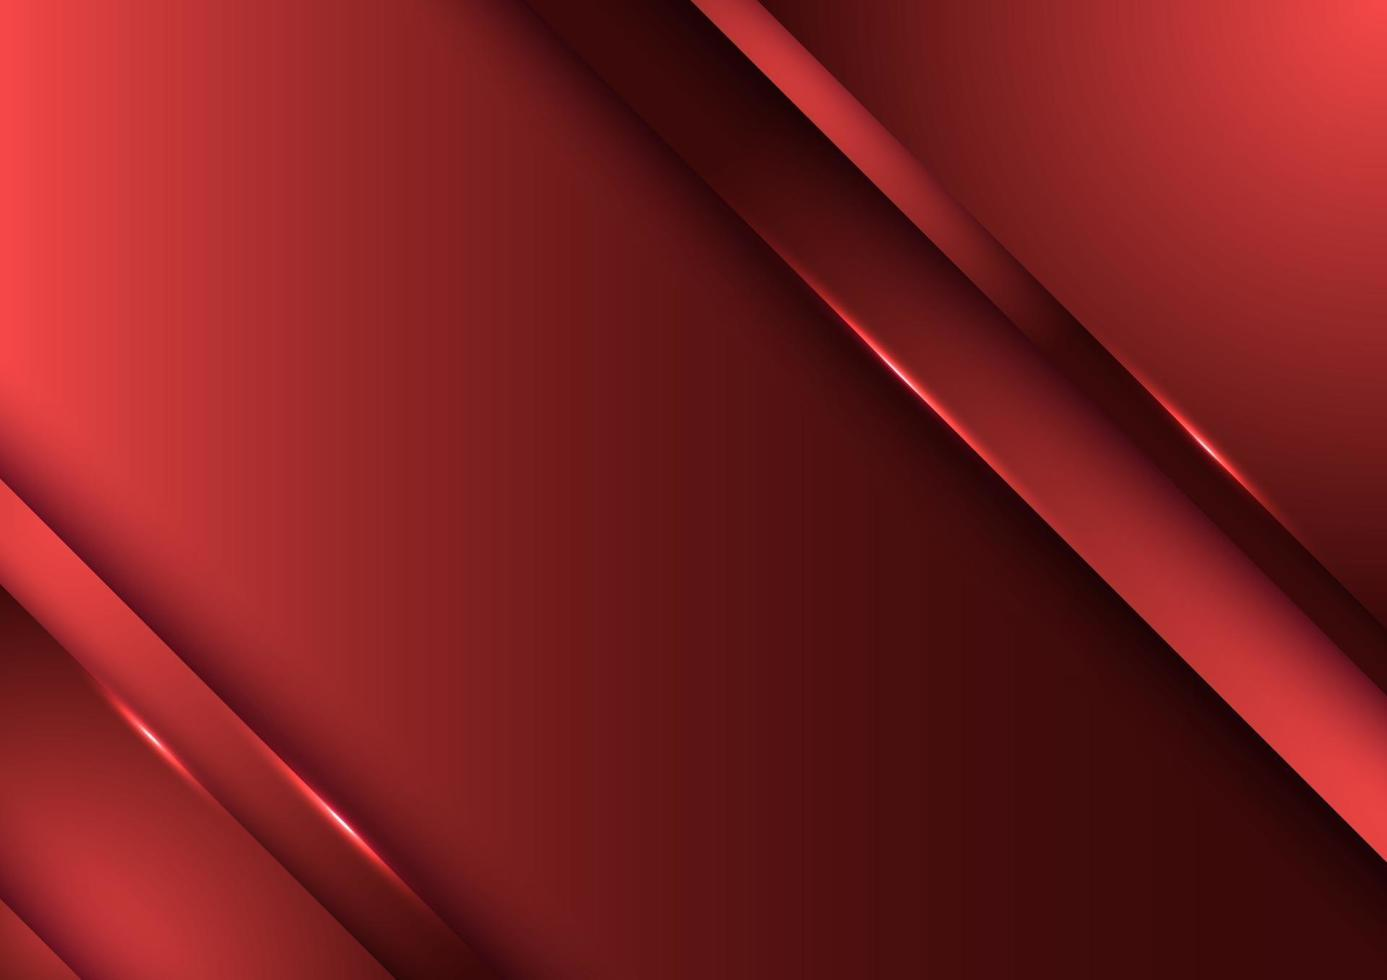 Template design abstract red gradient stripes overlap layer background with lighting vector